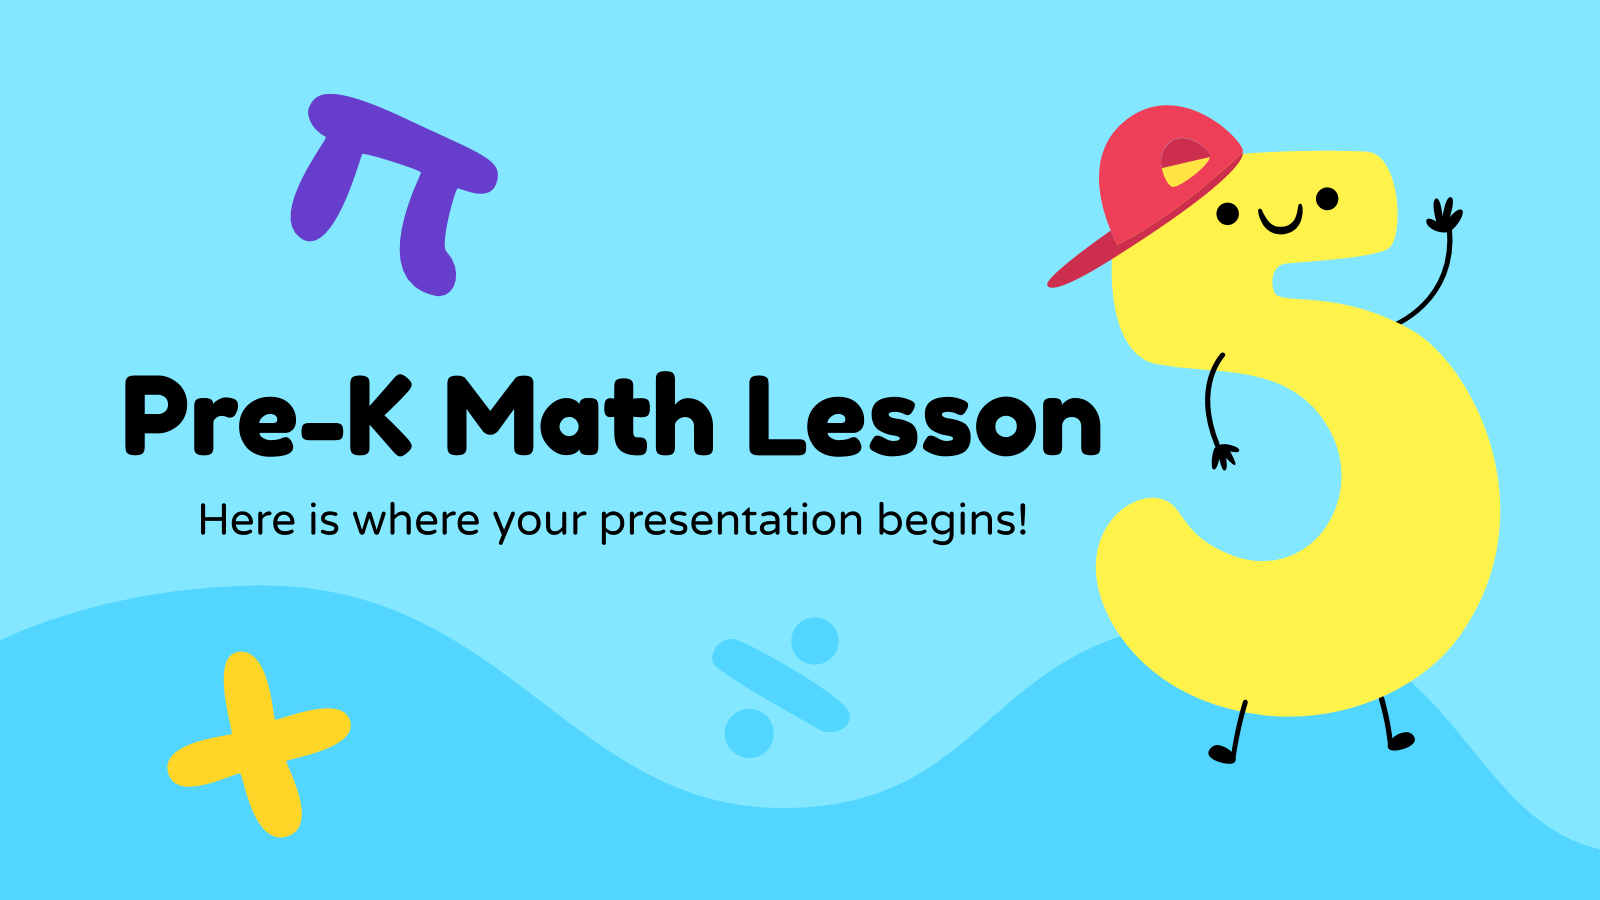 Math Pre-K Lesson presentation template